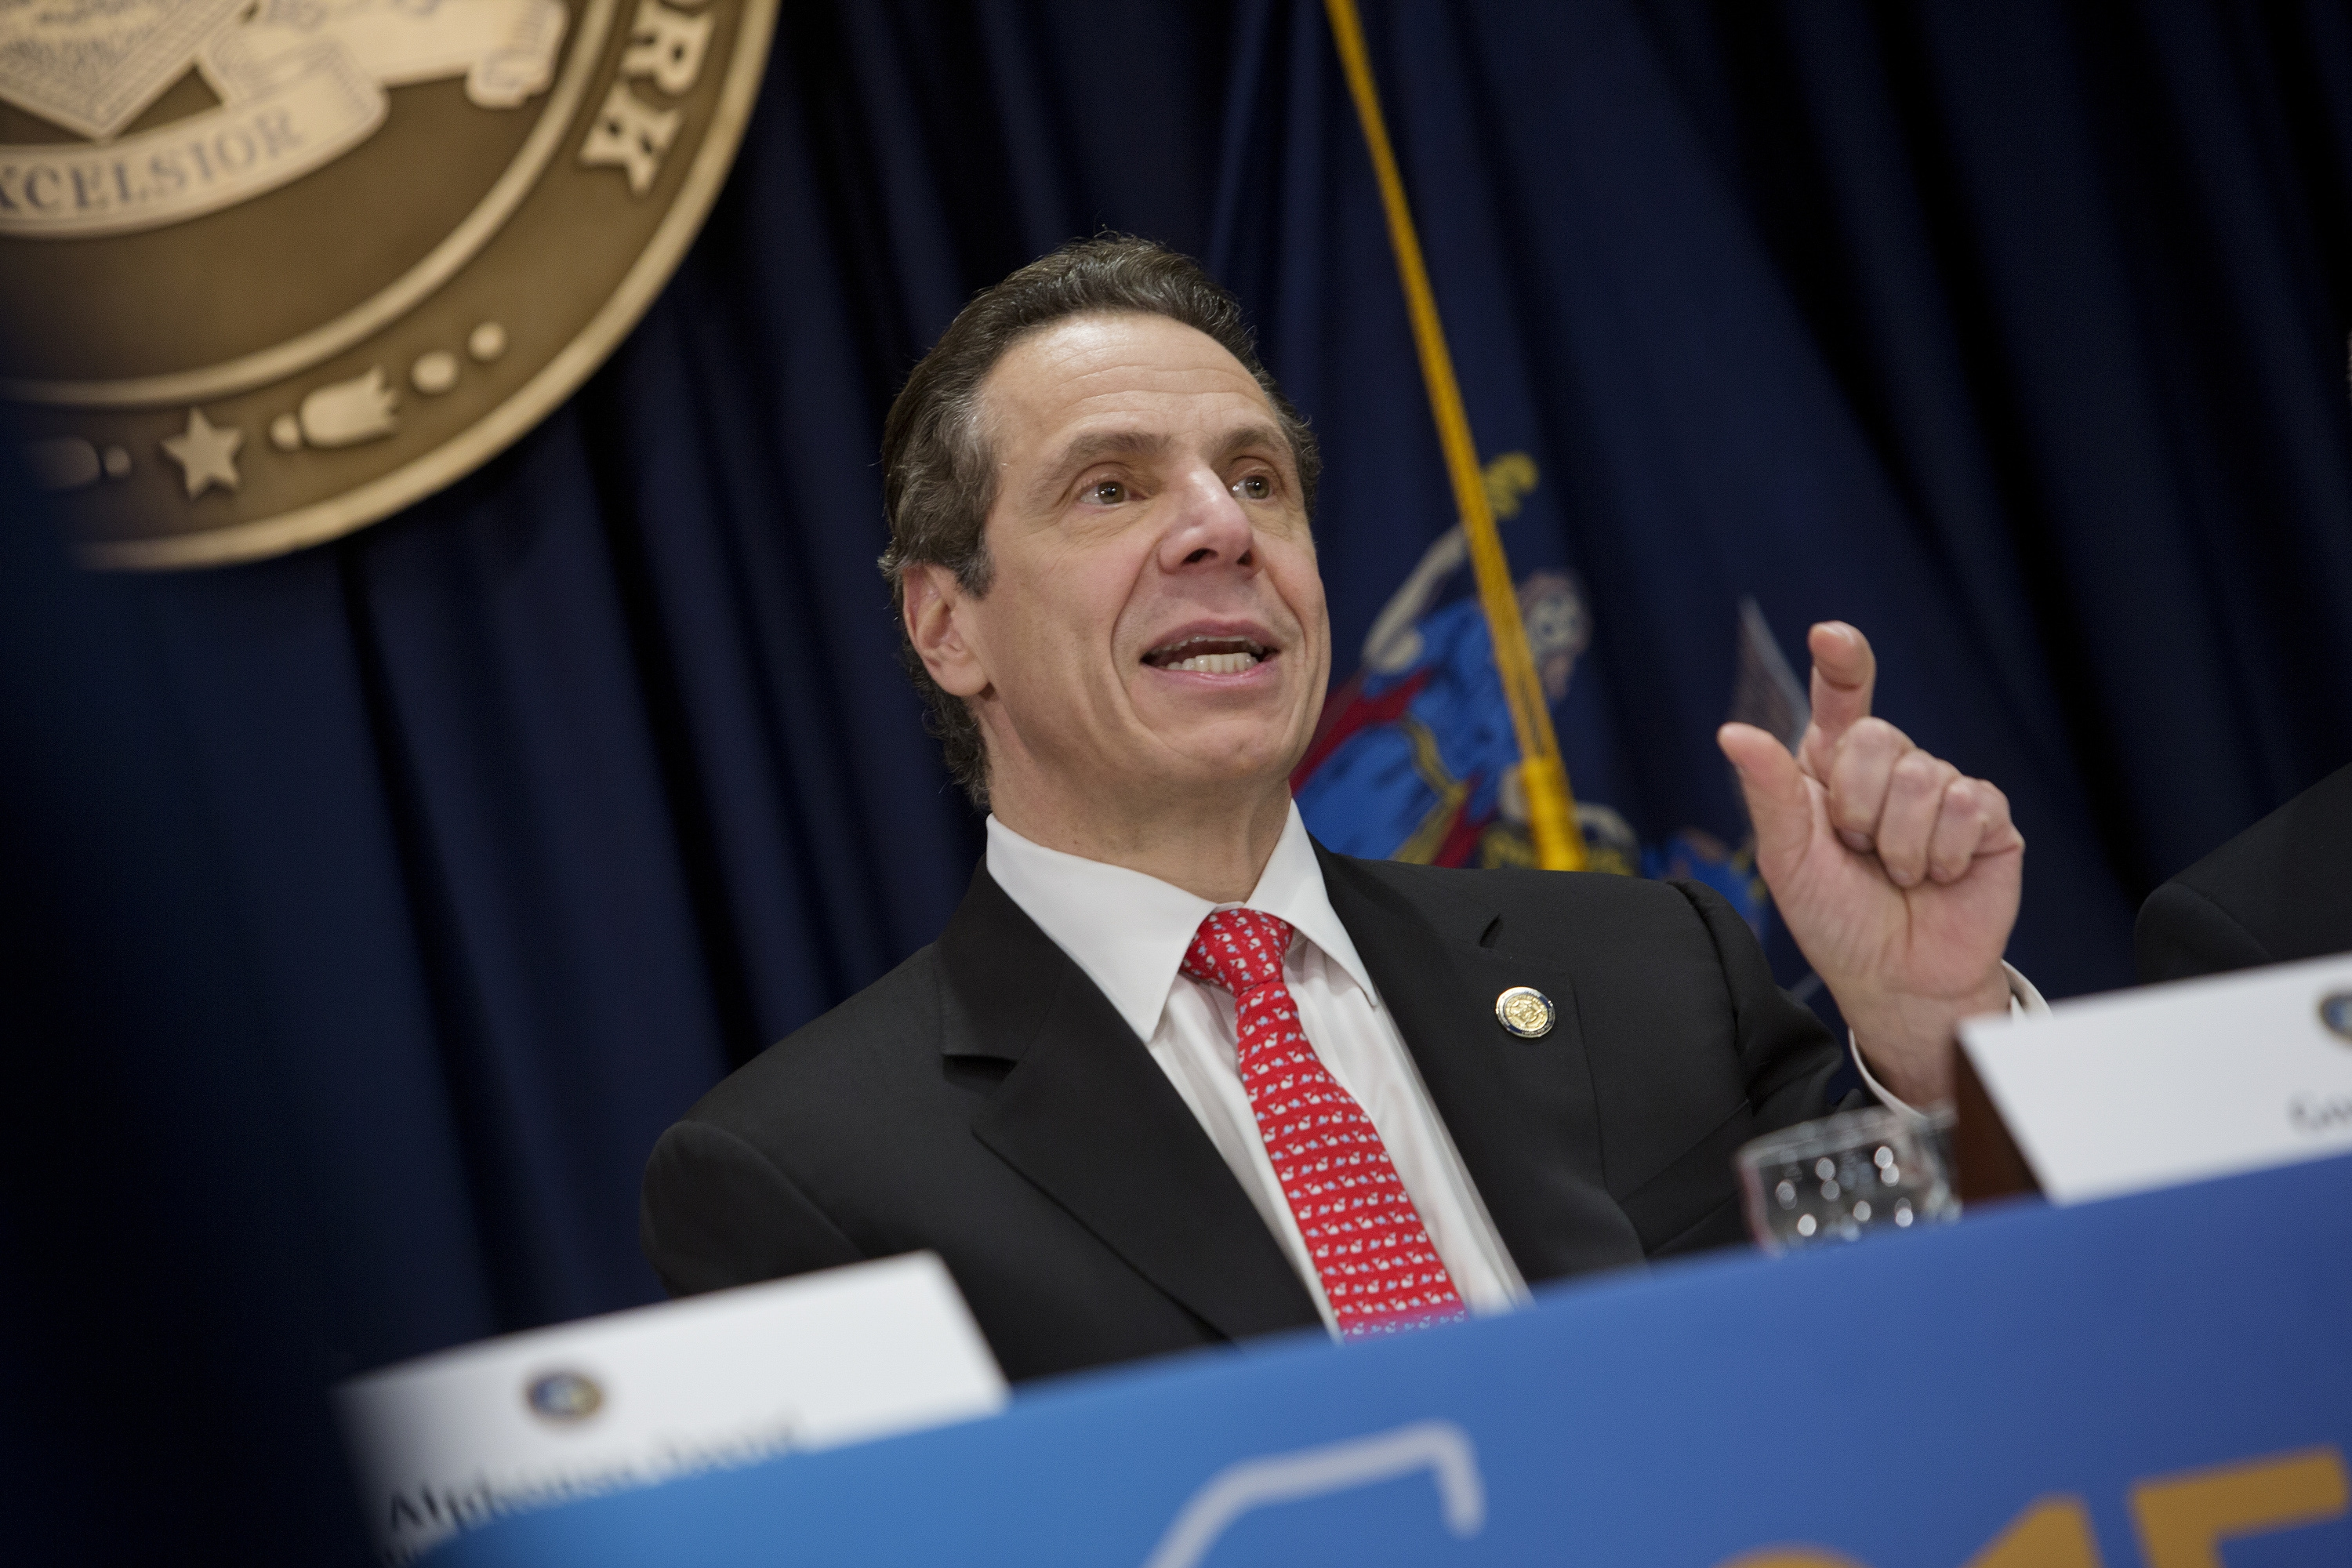 Gov. Andrew Cuomo's goals are the right goals. His focus on upstate, especially Buffalo, has made a noticeable difference. (New York Times photo)